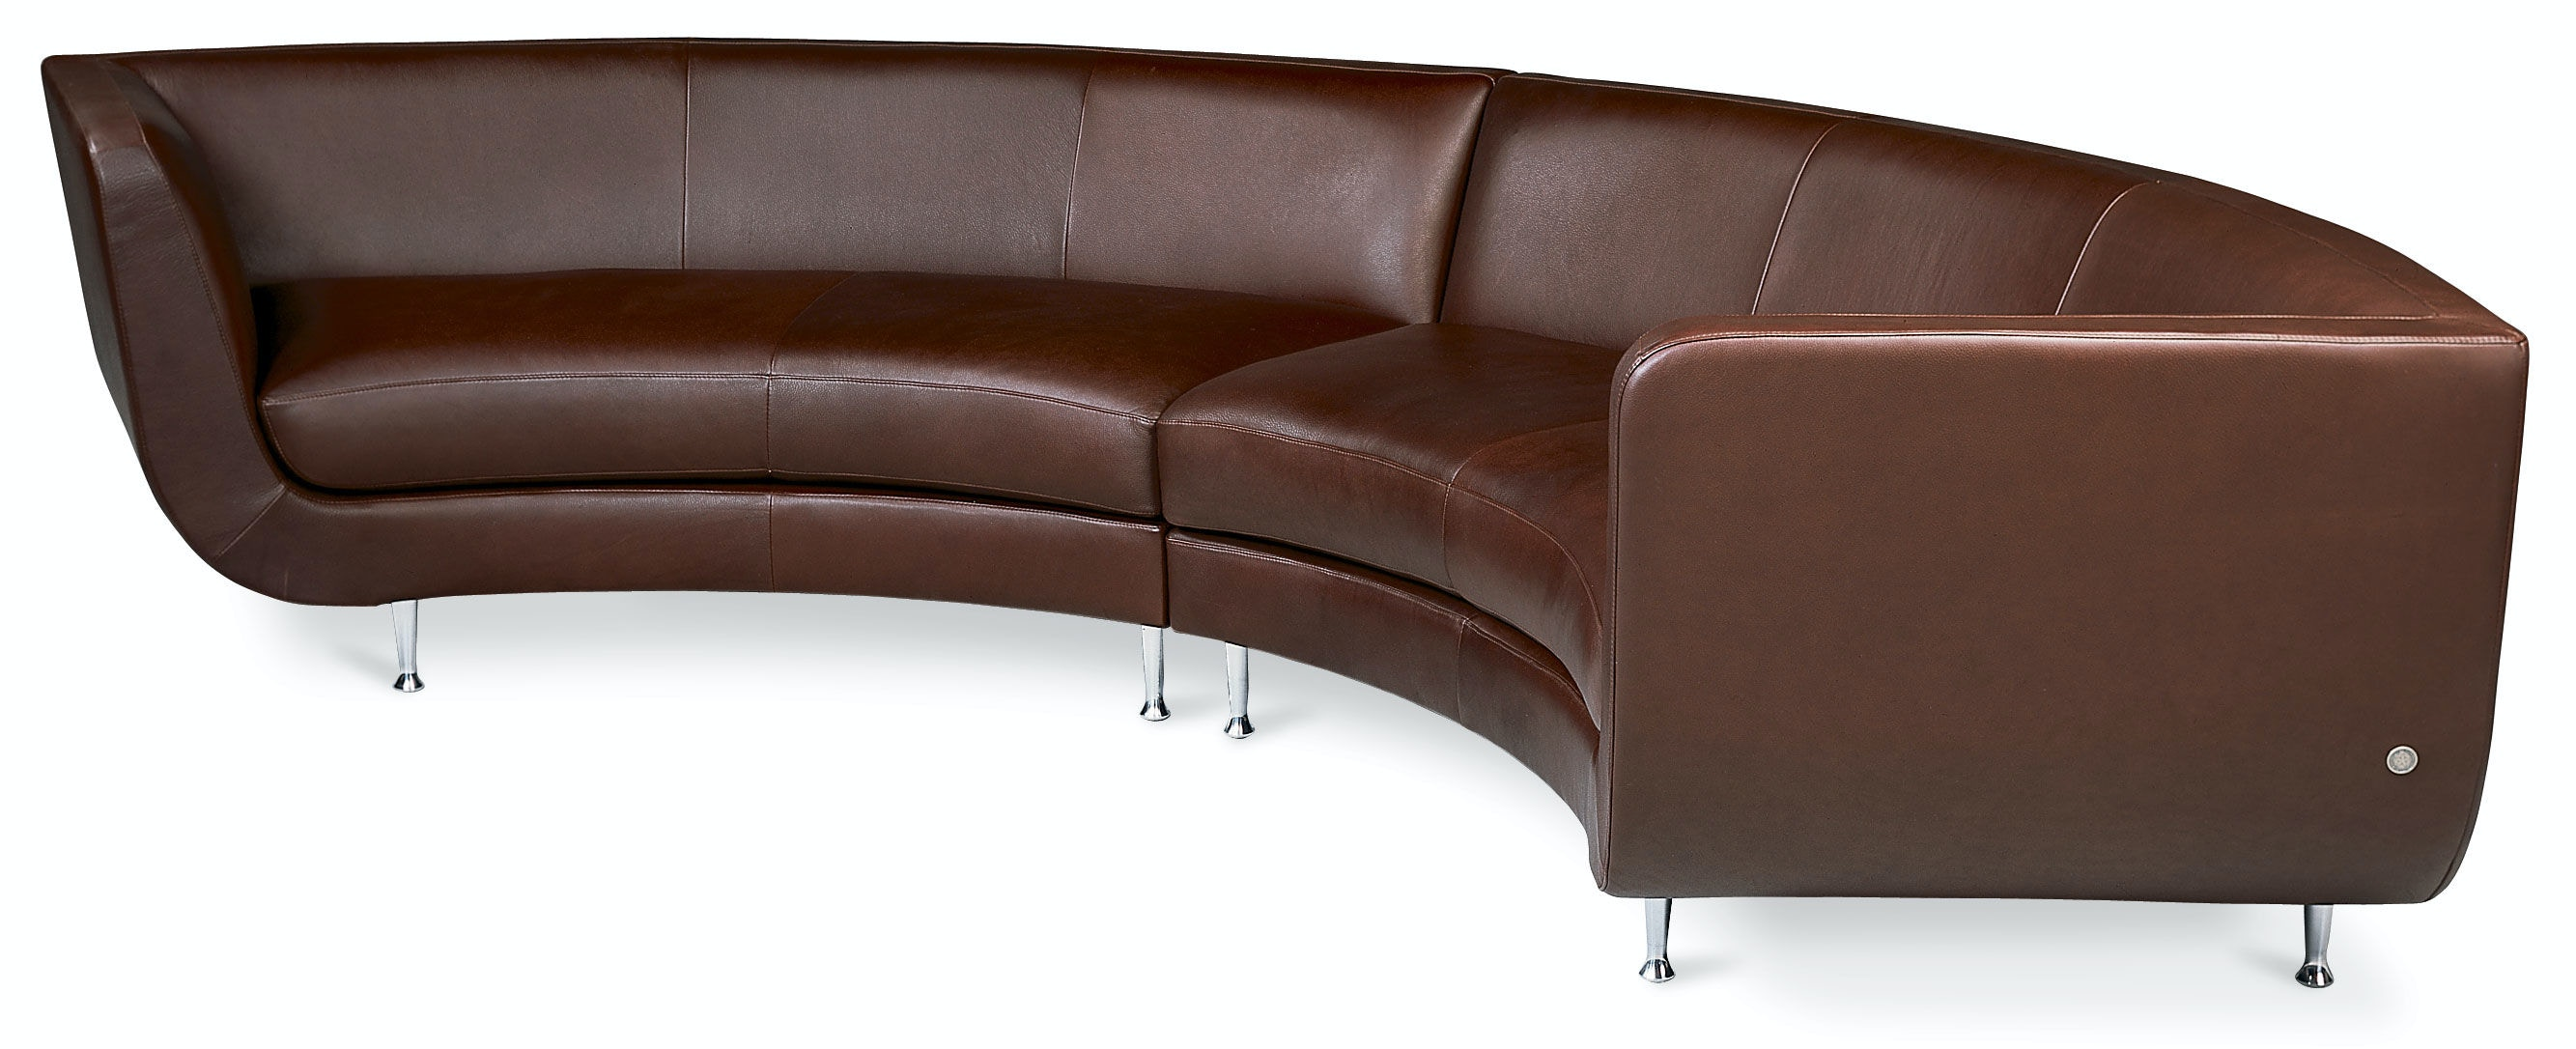 american leather chairs and recliners foldable chair plans furniture portland or key home furnishings sectional menlo park